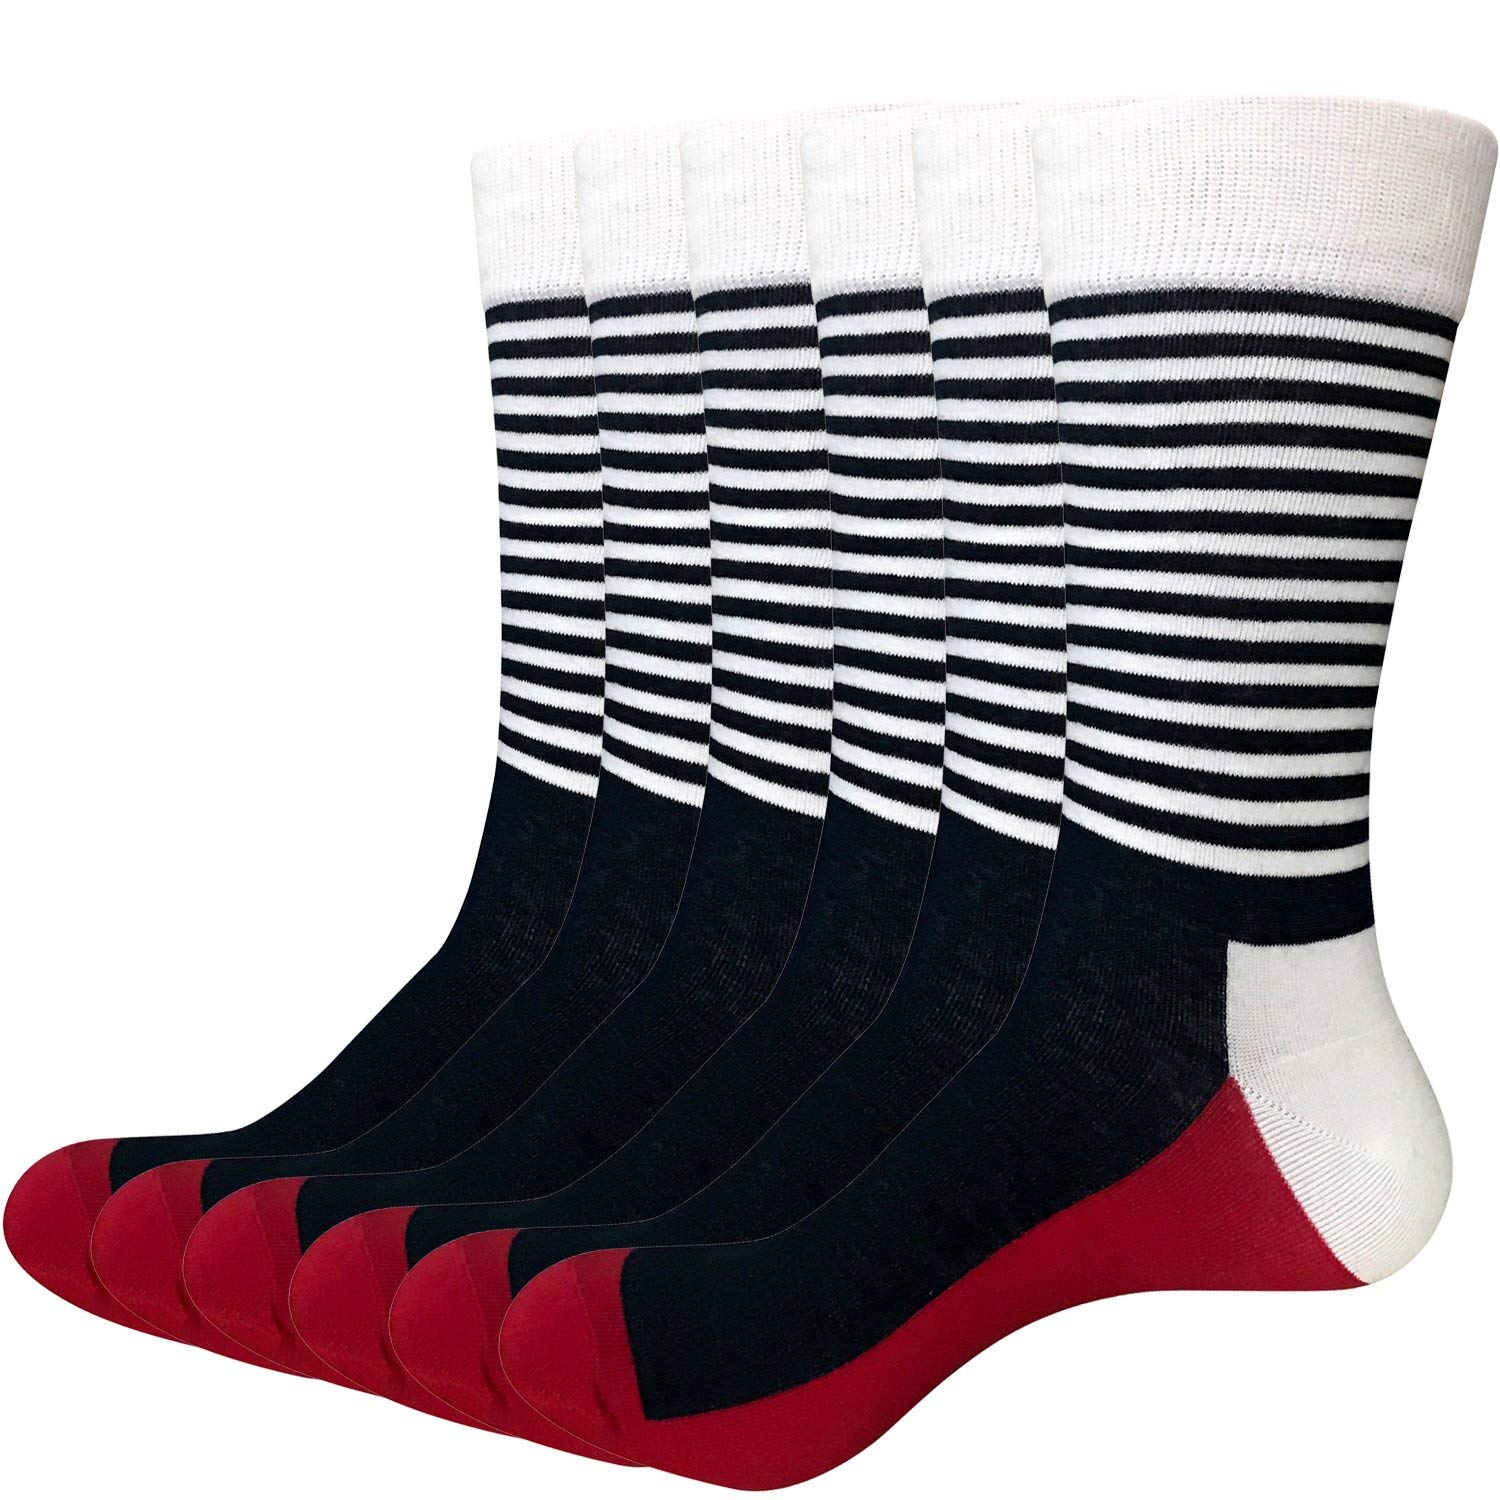 Areke Mens Cotton Blend Stripe Colorful Patterned Athletic Crew Socks, Seamless Sport Casual Soxs 6 Pairs